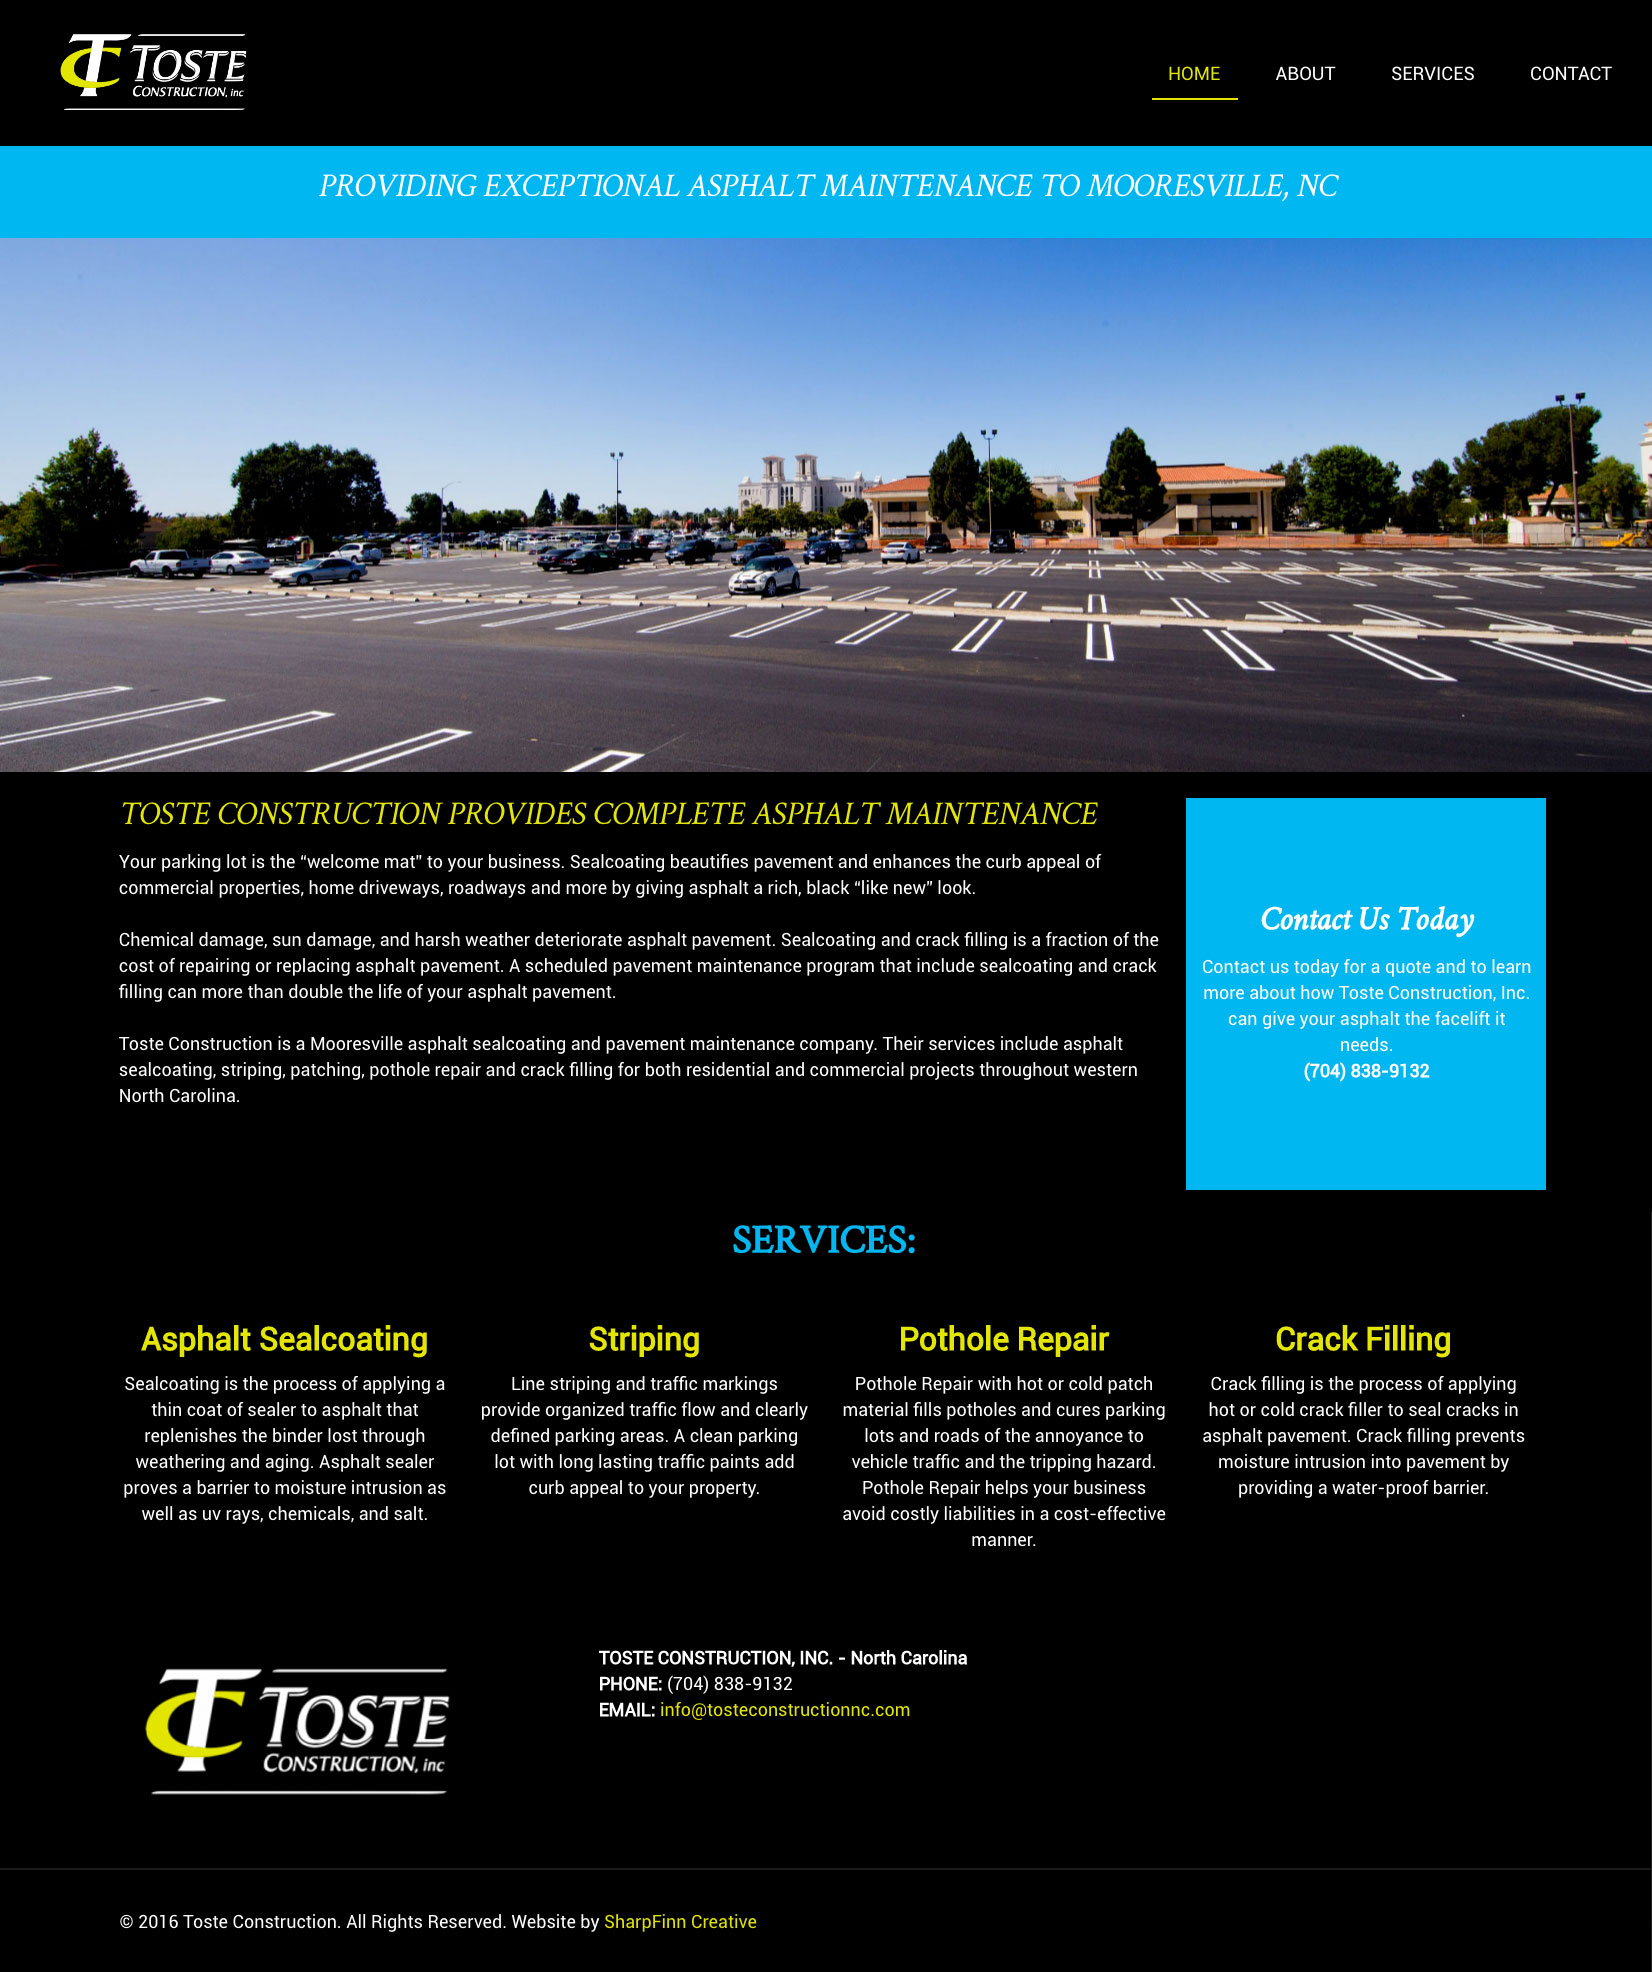 Toste Construction, Inc. North Carolina | Website Design